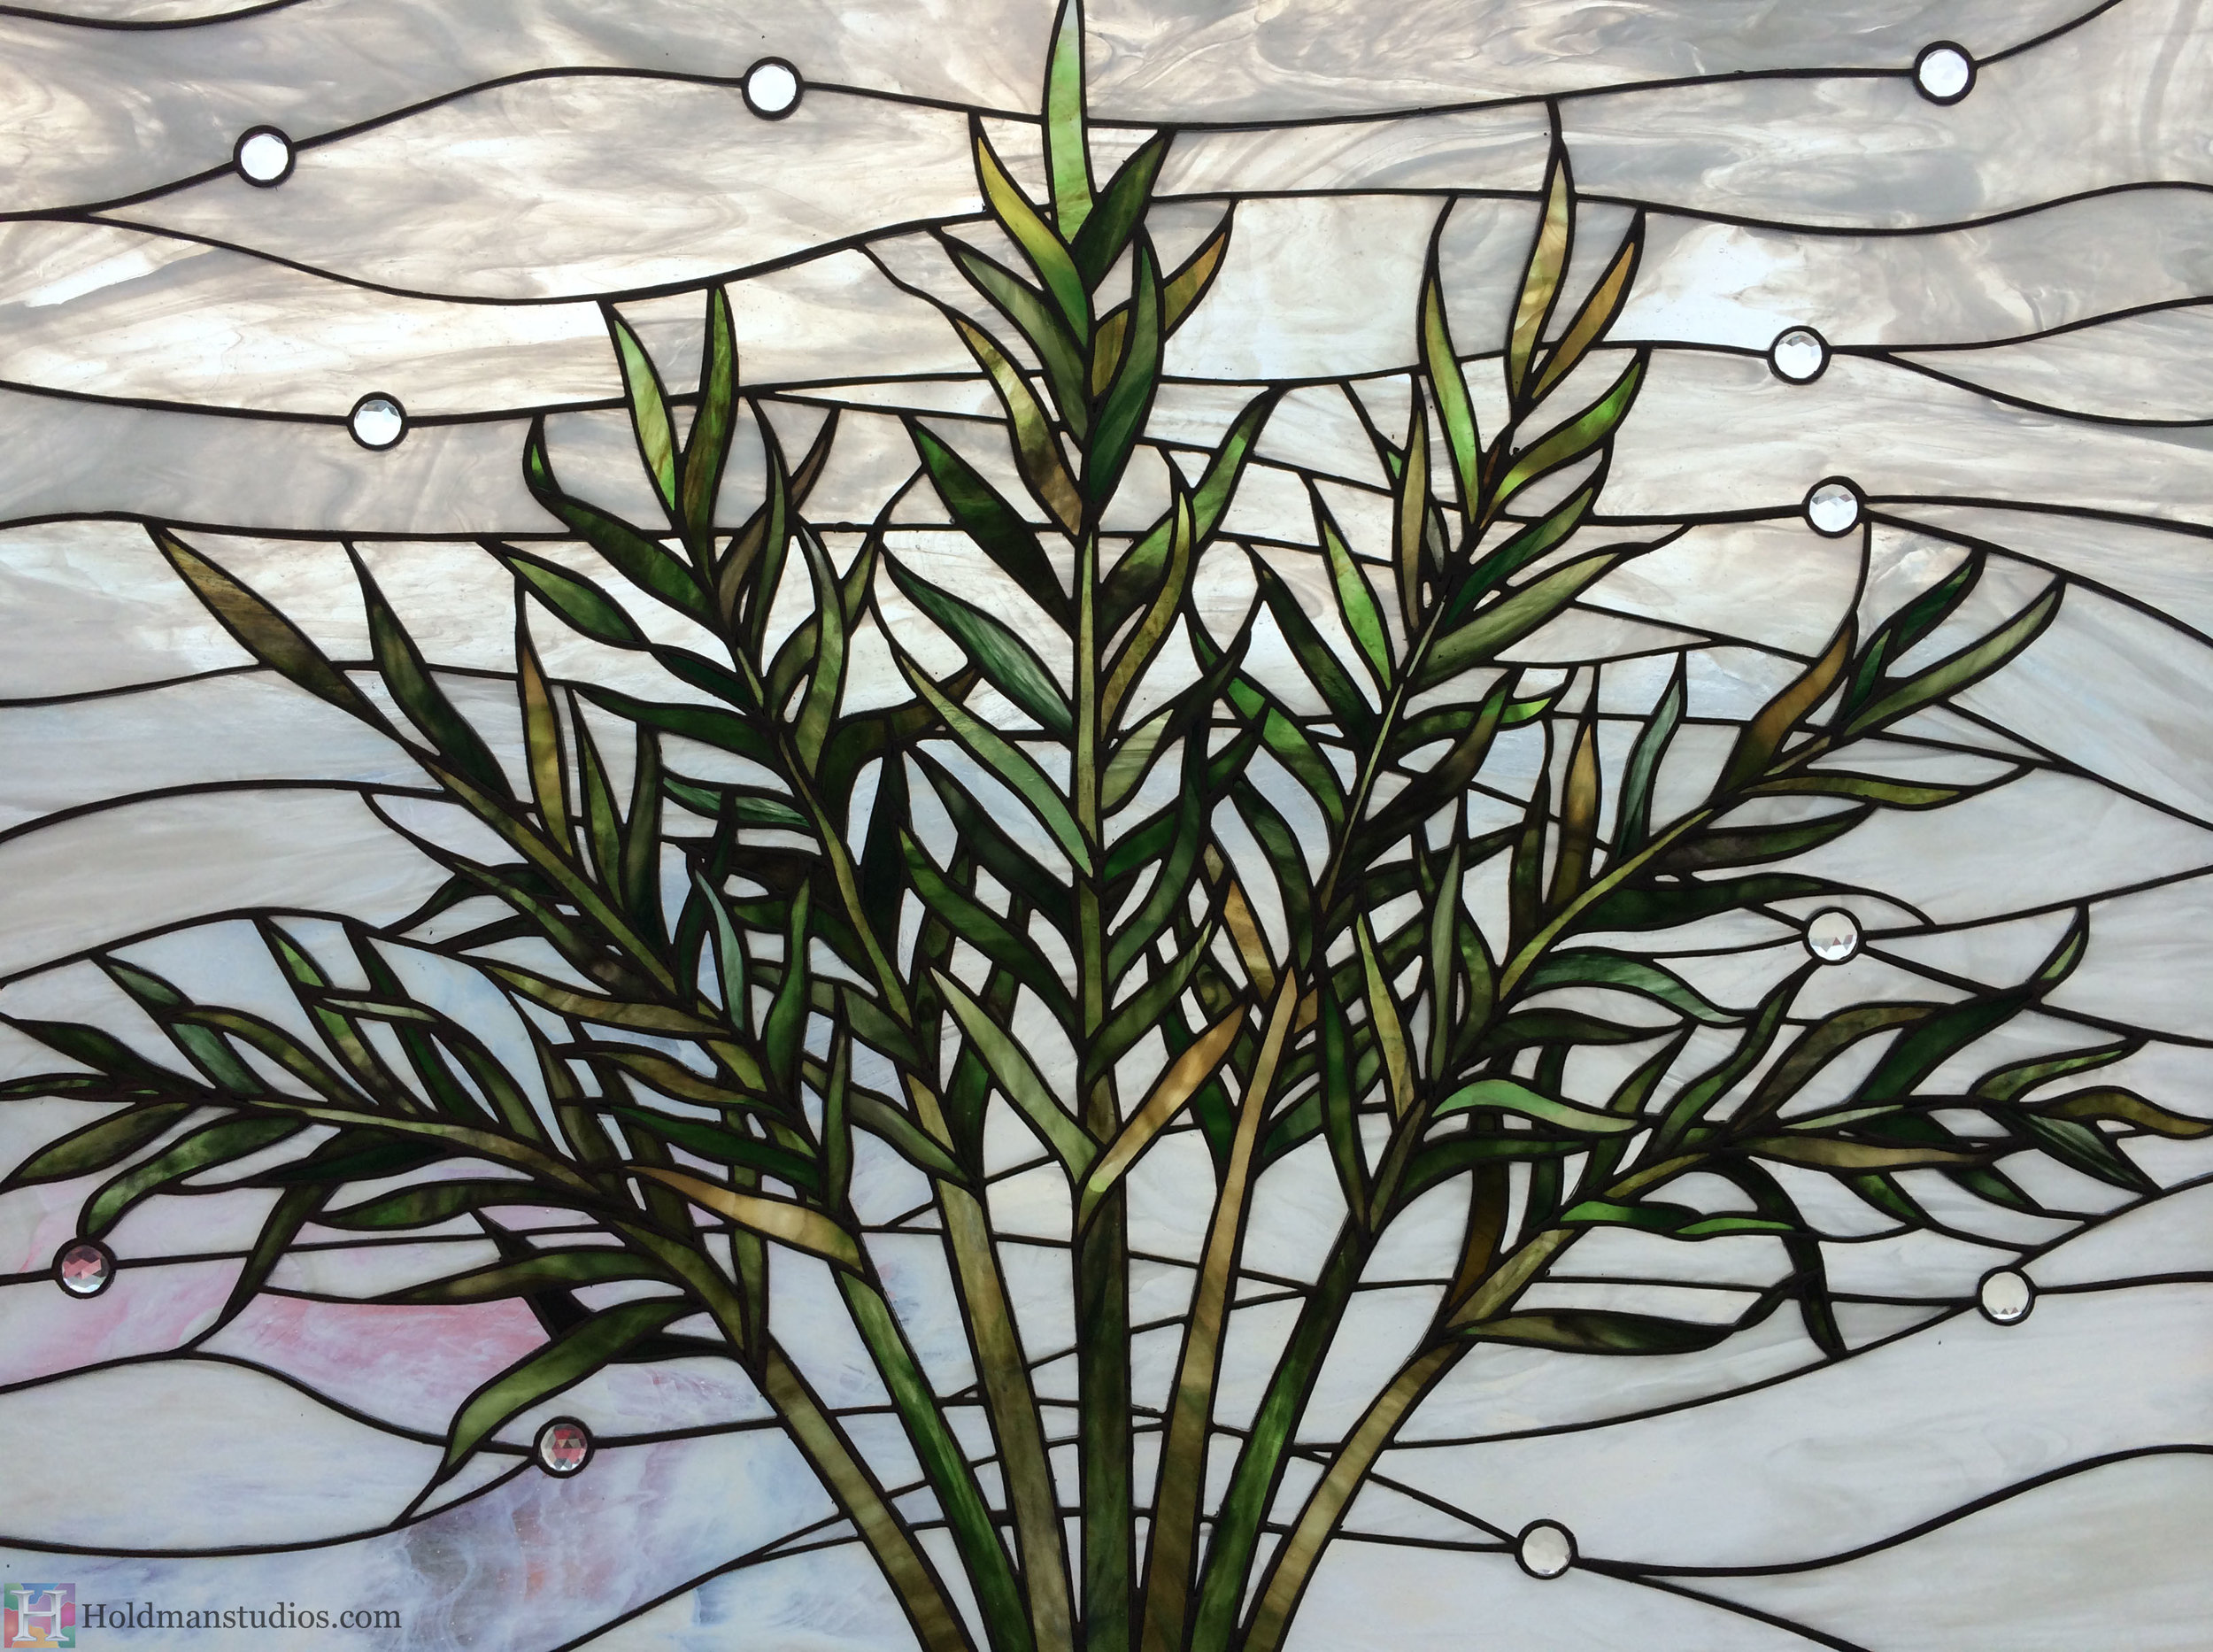 Holdman-Studios-Stained-Glass-Window-Harvest-Branches-Palm-Leaves.jpg